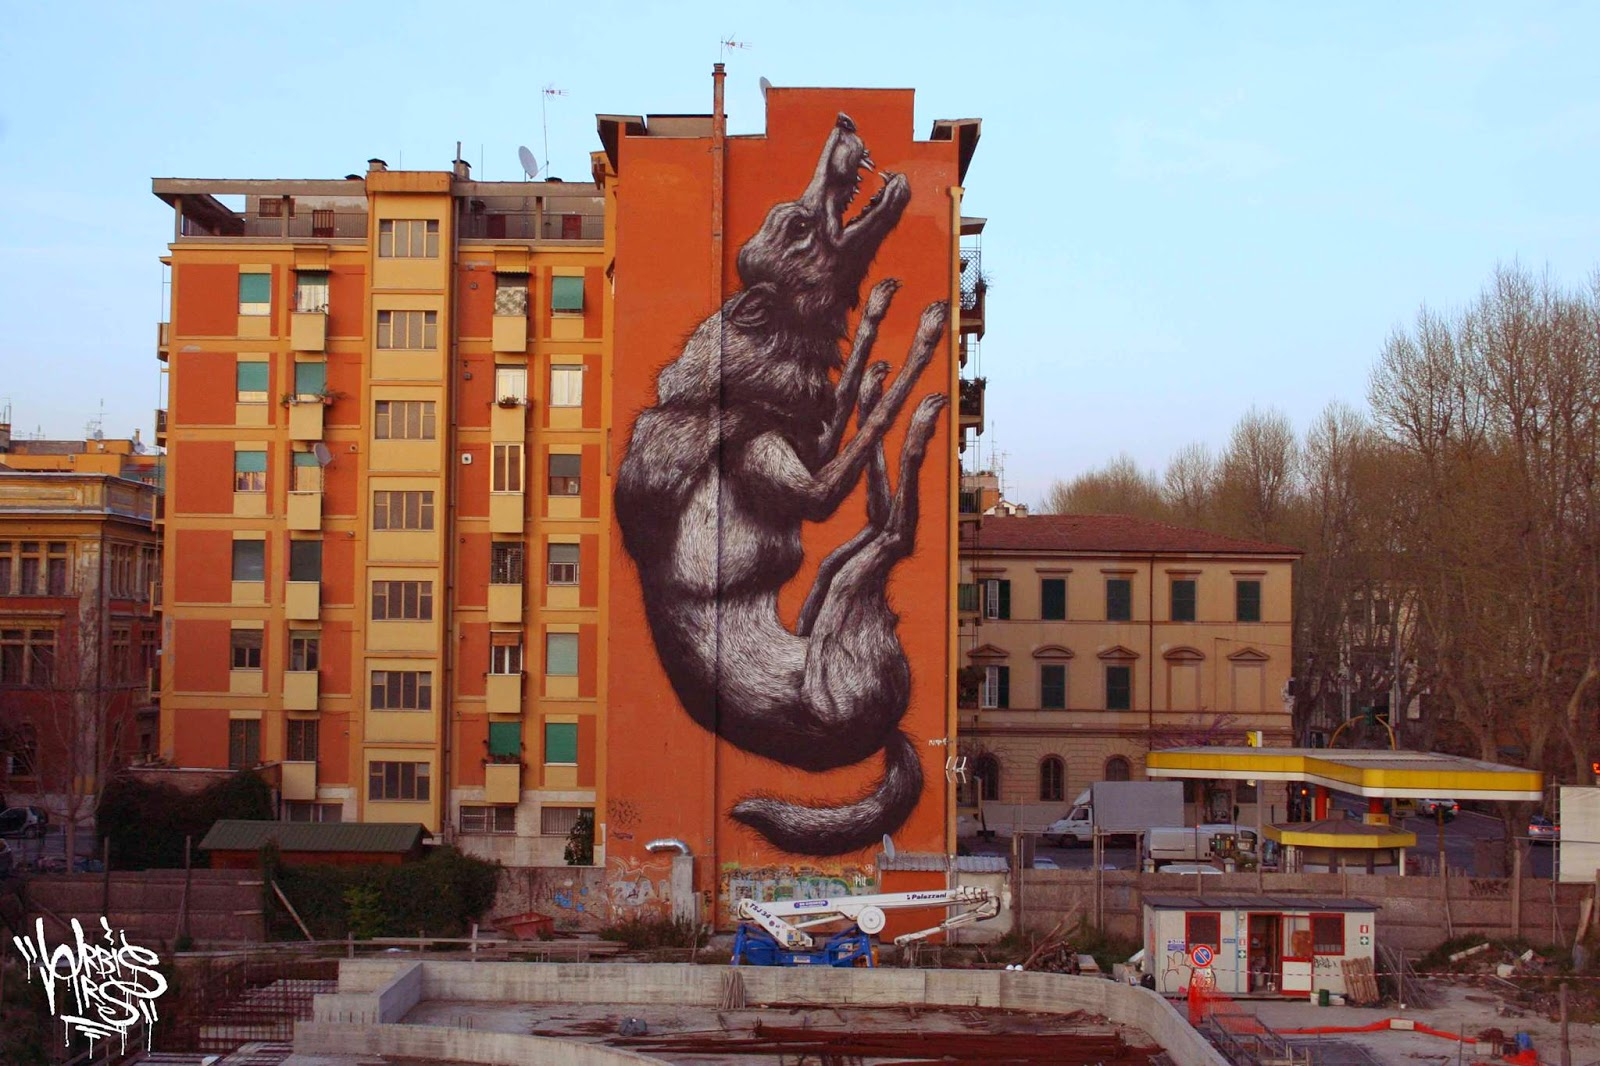 While we last heard from him in New-Zealand earlier this year (covered), ROA is now back in Europe where he spent the last few days working on one of his biggest piece to date on the streets of Rome, Italy.